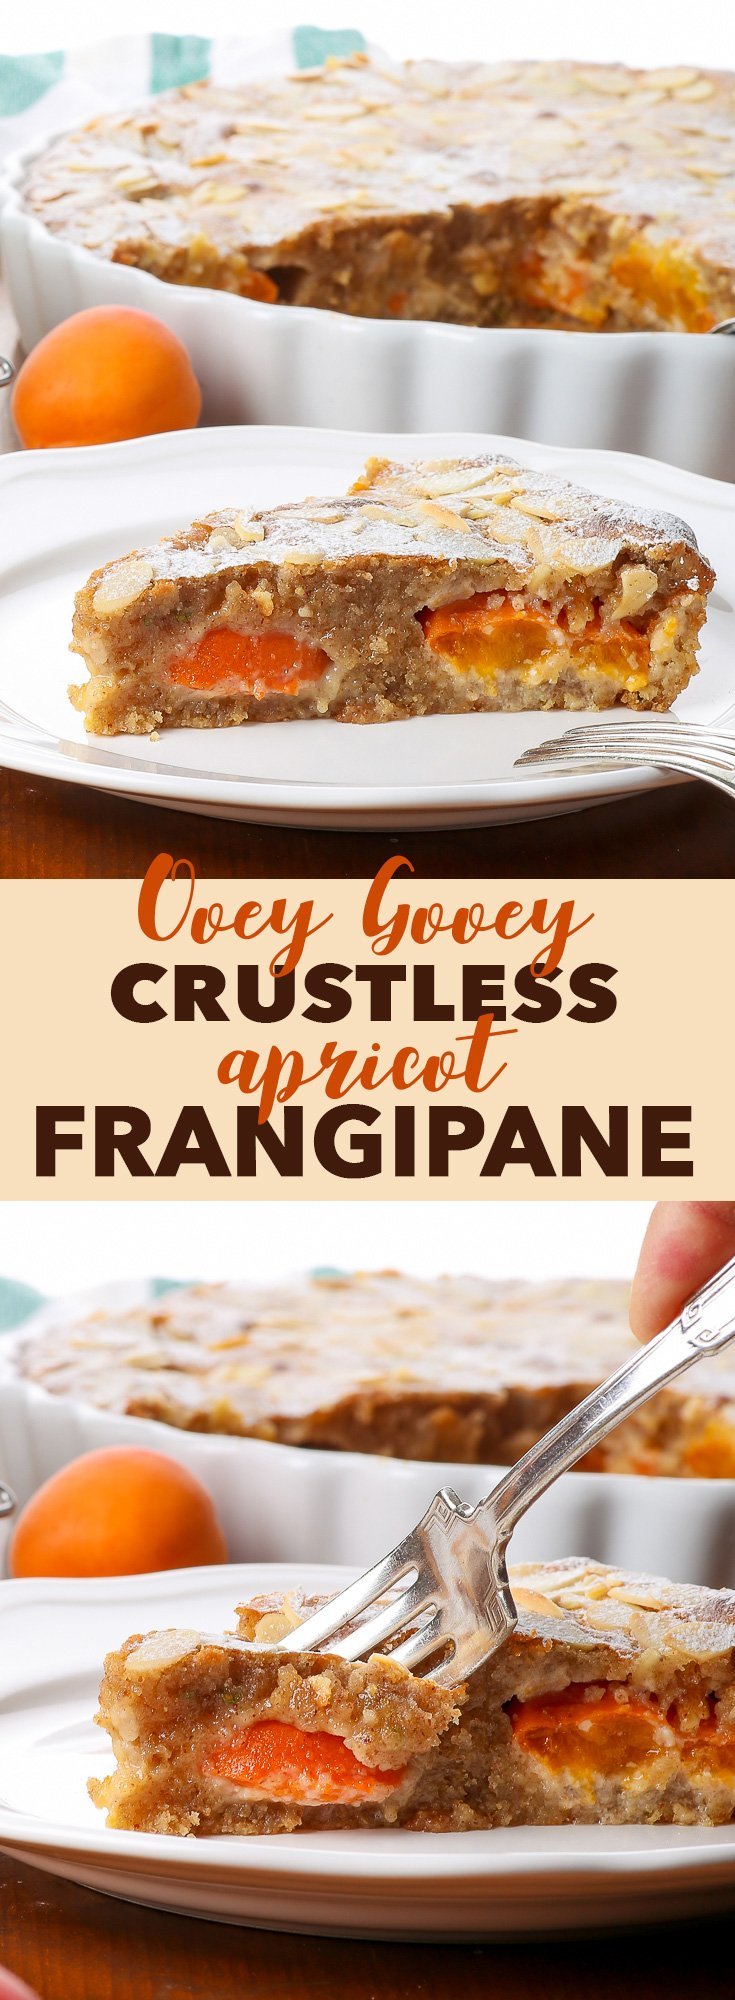 Ooey Gooey Crustless Apricot Frangipane Tart {gluten, soy & peanut free} - This crustless apricot frangipane tart is basically just everyone's favourite part of any tart – the filling! It really is ooey and gooey and everything else buttery and decadent. The recipe is easy and gluten free, and the flavour combination of slightly tart apricots, almonds and aromatic lemon thyme will blow you away.